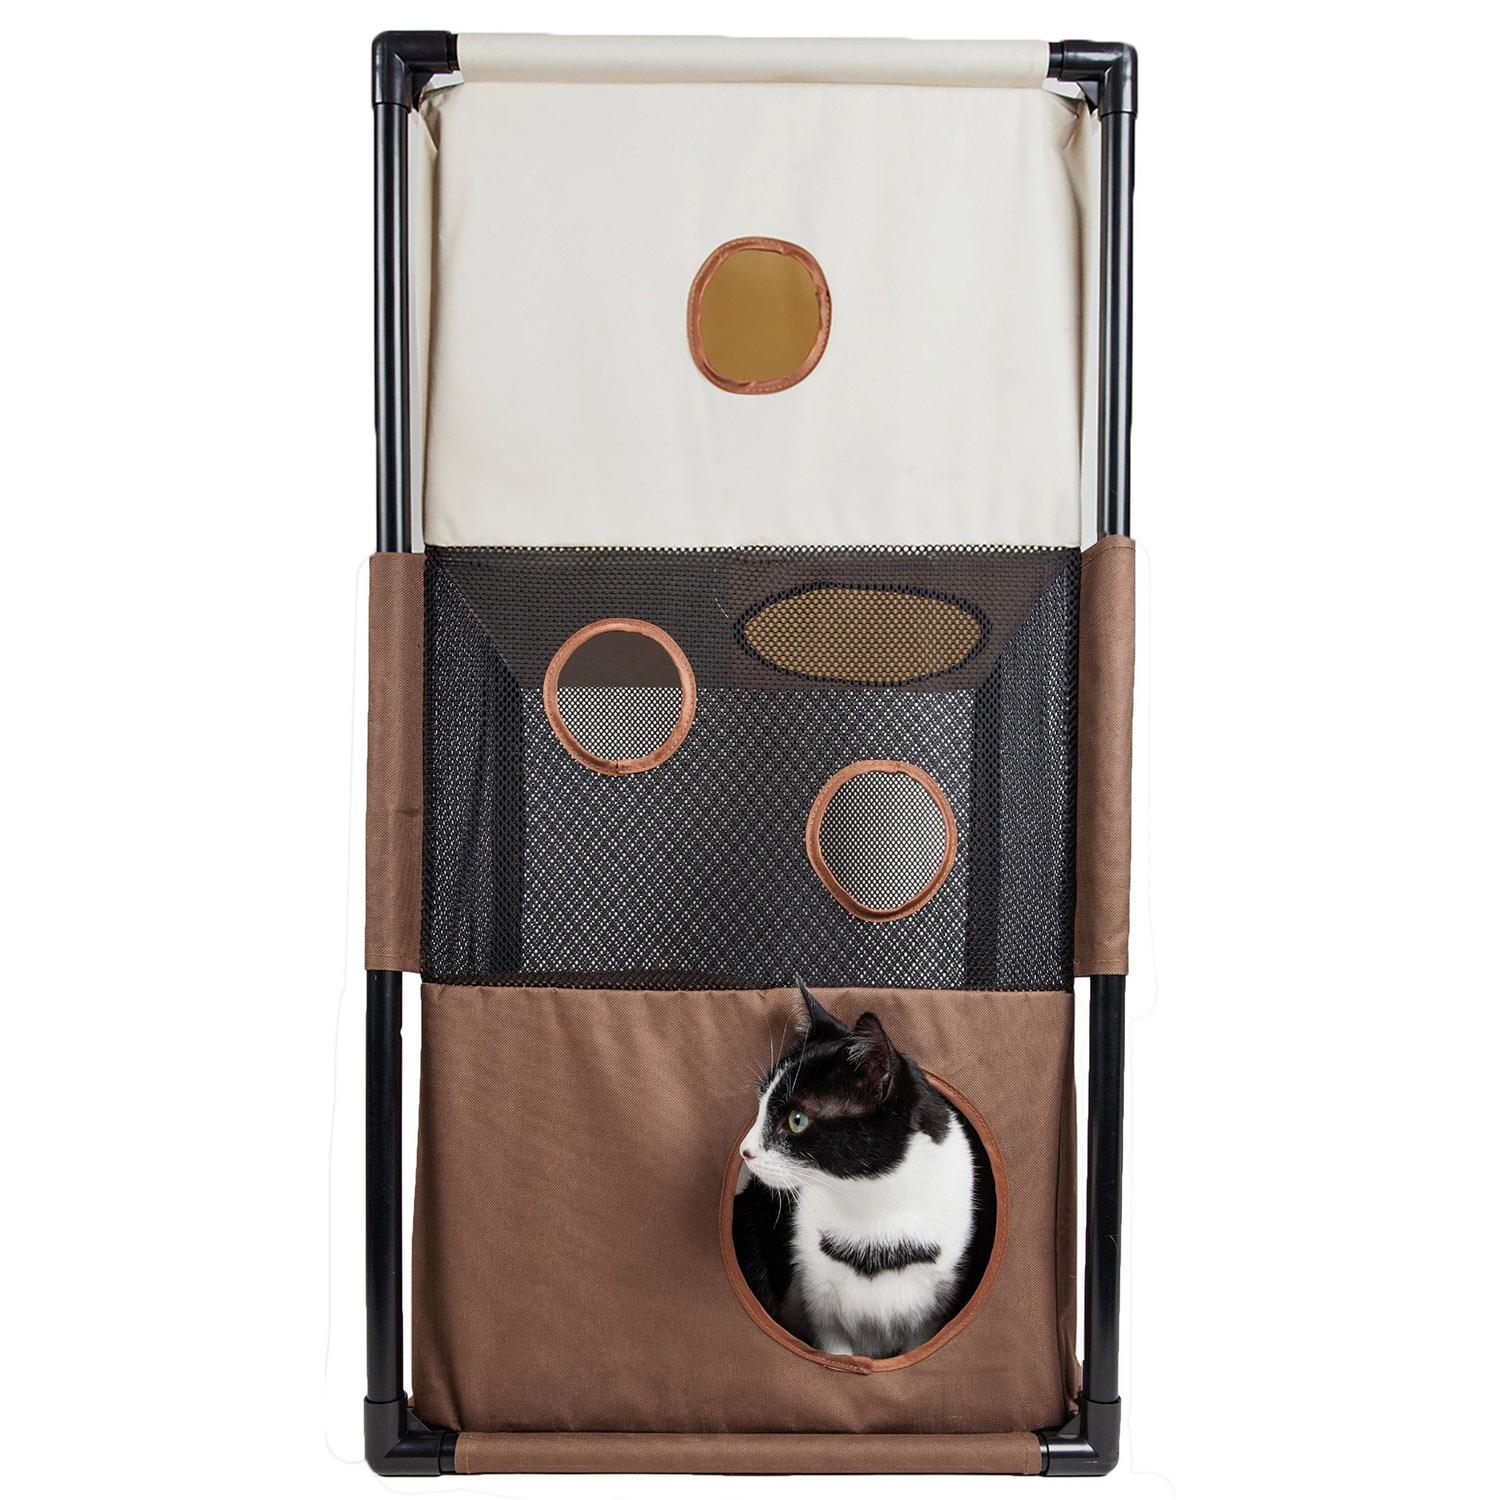 Pet Life 'Kitty-Square' Collapsible Cat Playhouse Lounger - Khaki and Brown